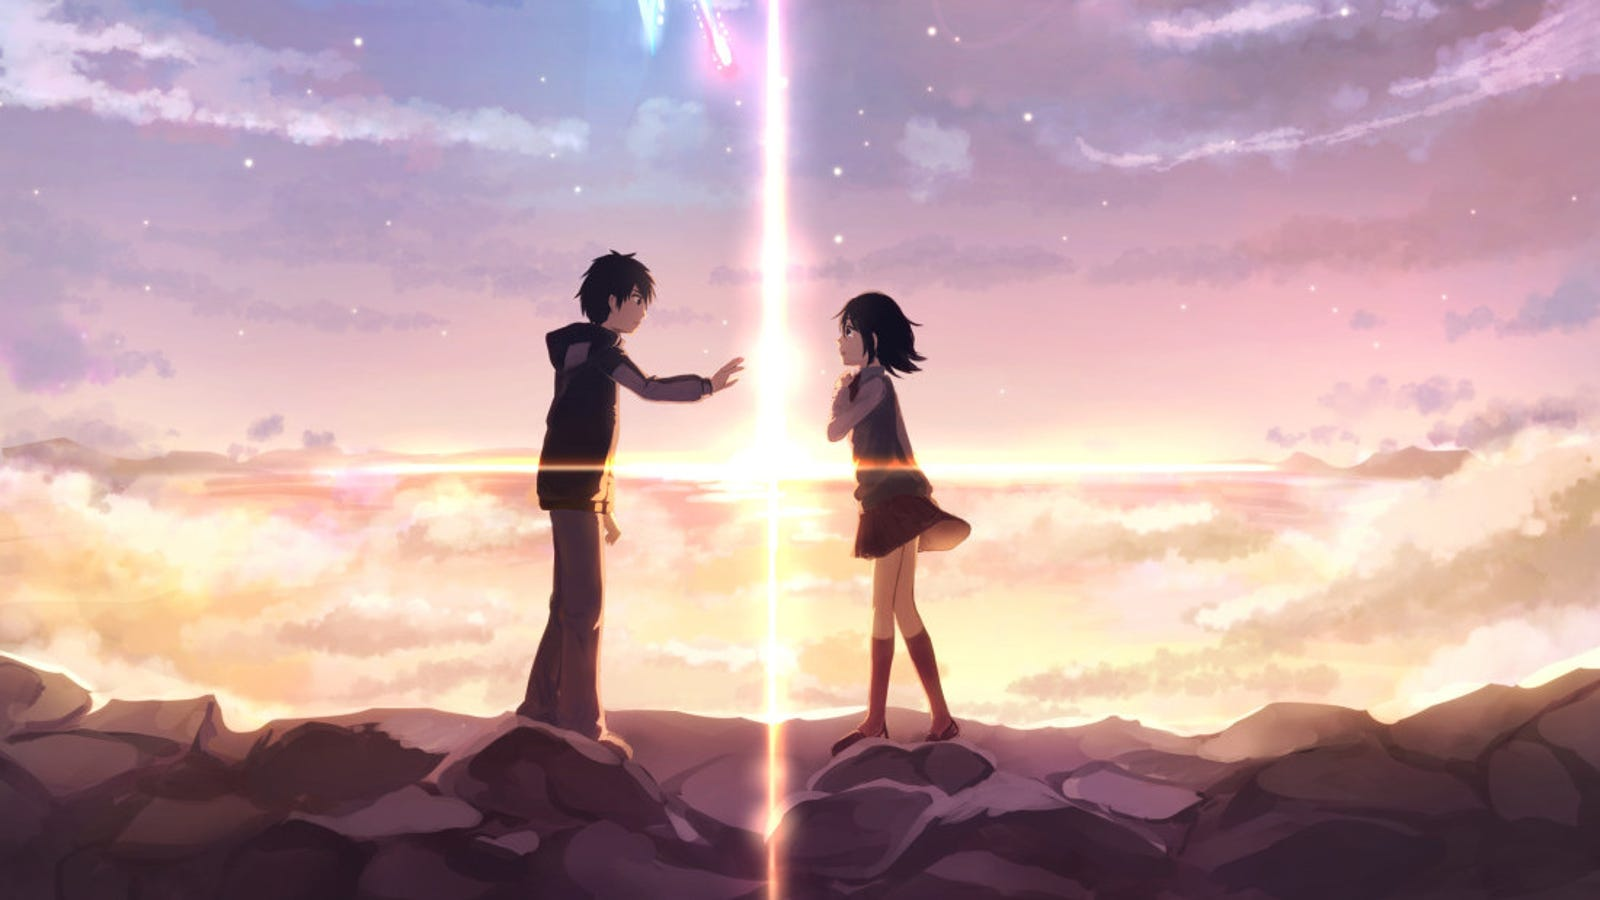 Your Name: Your Name Remake Will Be Americanized, Says Screenwriter